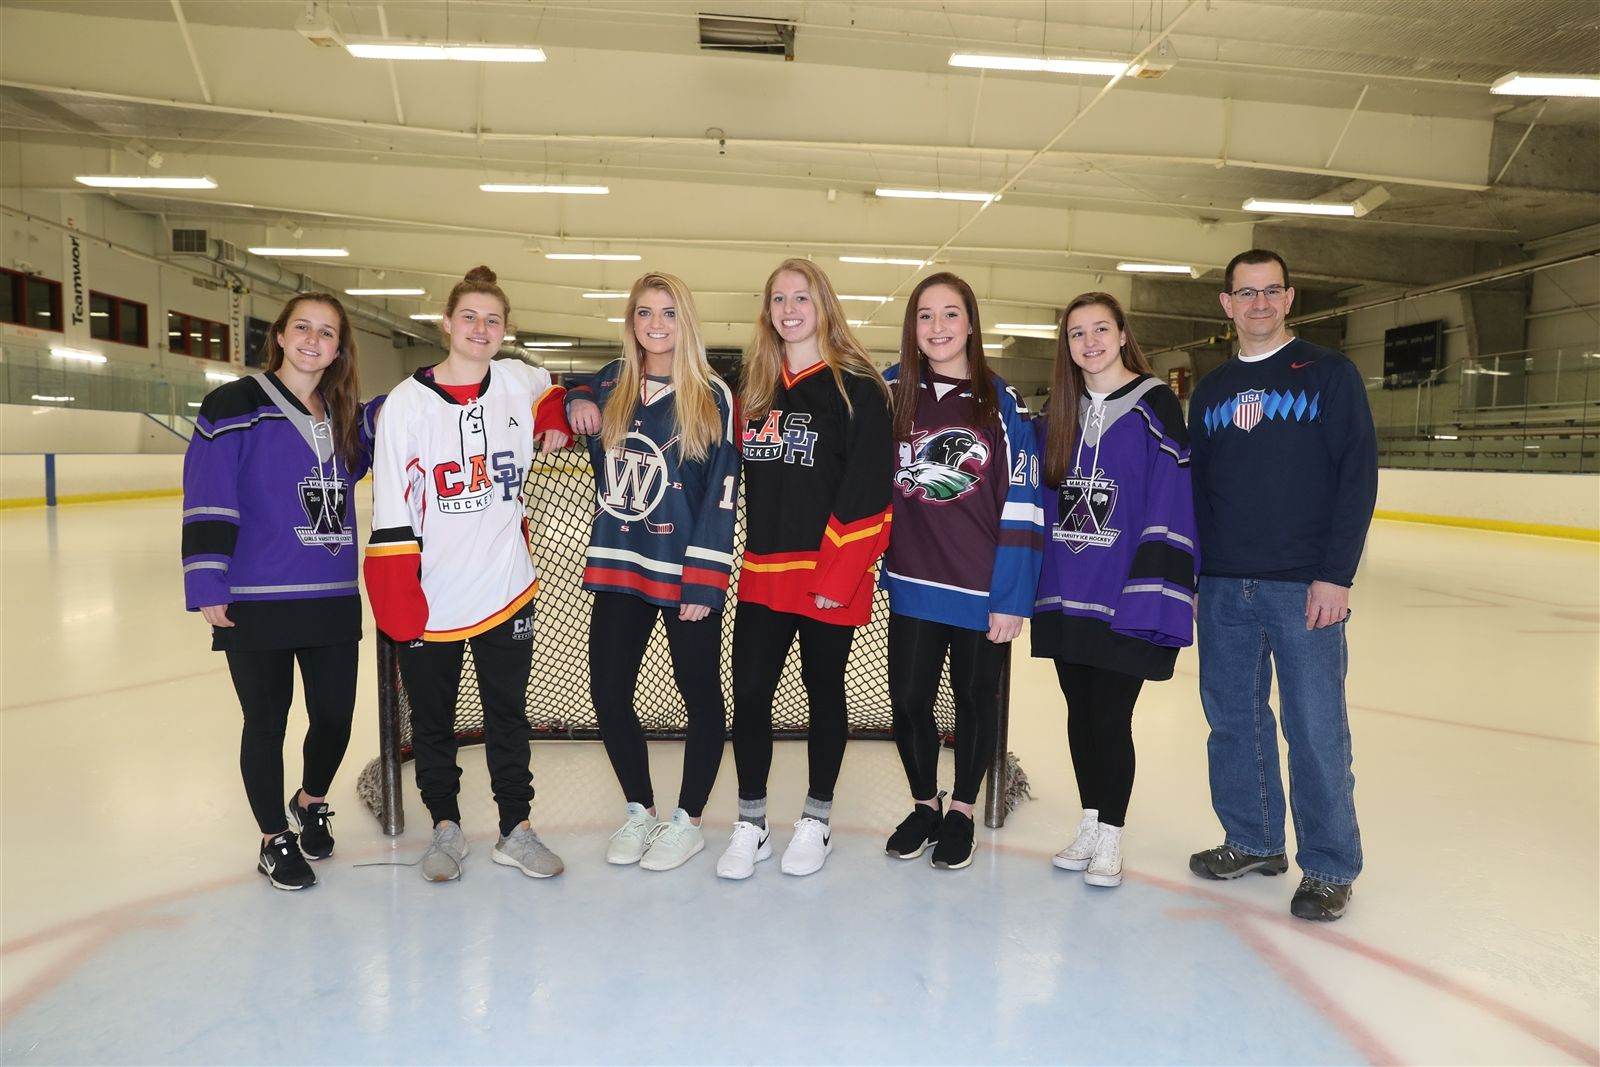 The 2017-18 All-Federation team (left to right): F-Kayla Blas, Monsingor Martin; F-Emma Faso, Amherst/Sweet Home/Clarence; F-Holly Schmelzer, Williamsville; D-Casey Adimey, Amherst/Sweet Home/Clarence; D-Brooke Becker, Frontier/Orchard Park/Lake Shore; G-Grace Harrington, Monsignor Martin; Coach of the Year: Dave Sandoro, Lancaster/Iroquois/Depew.